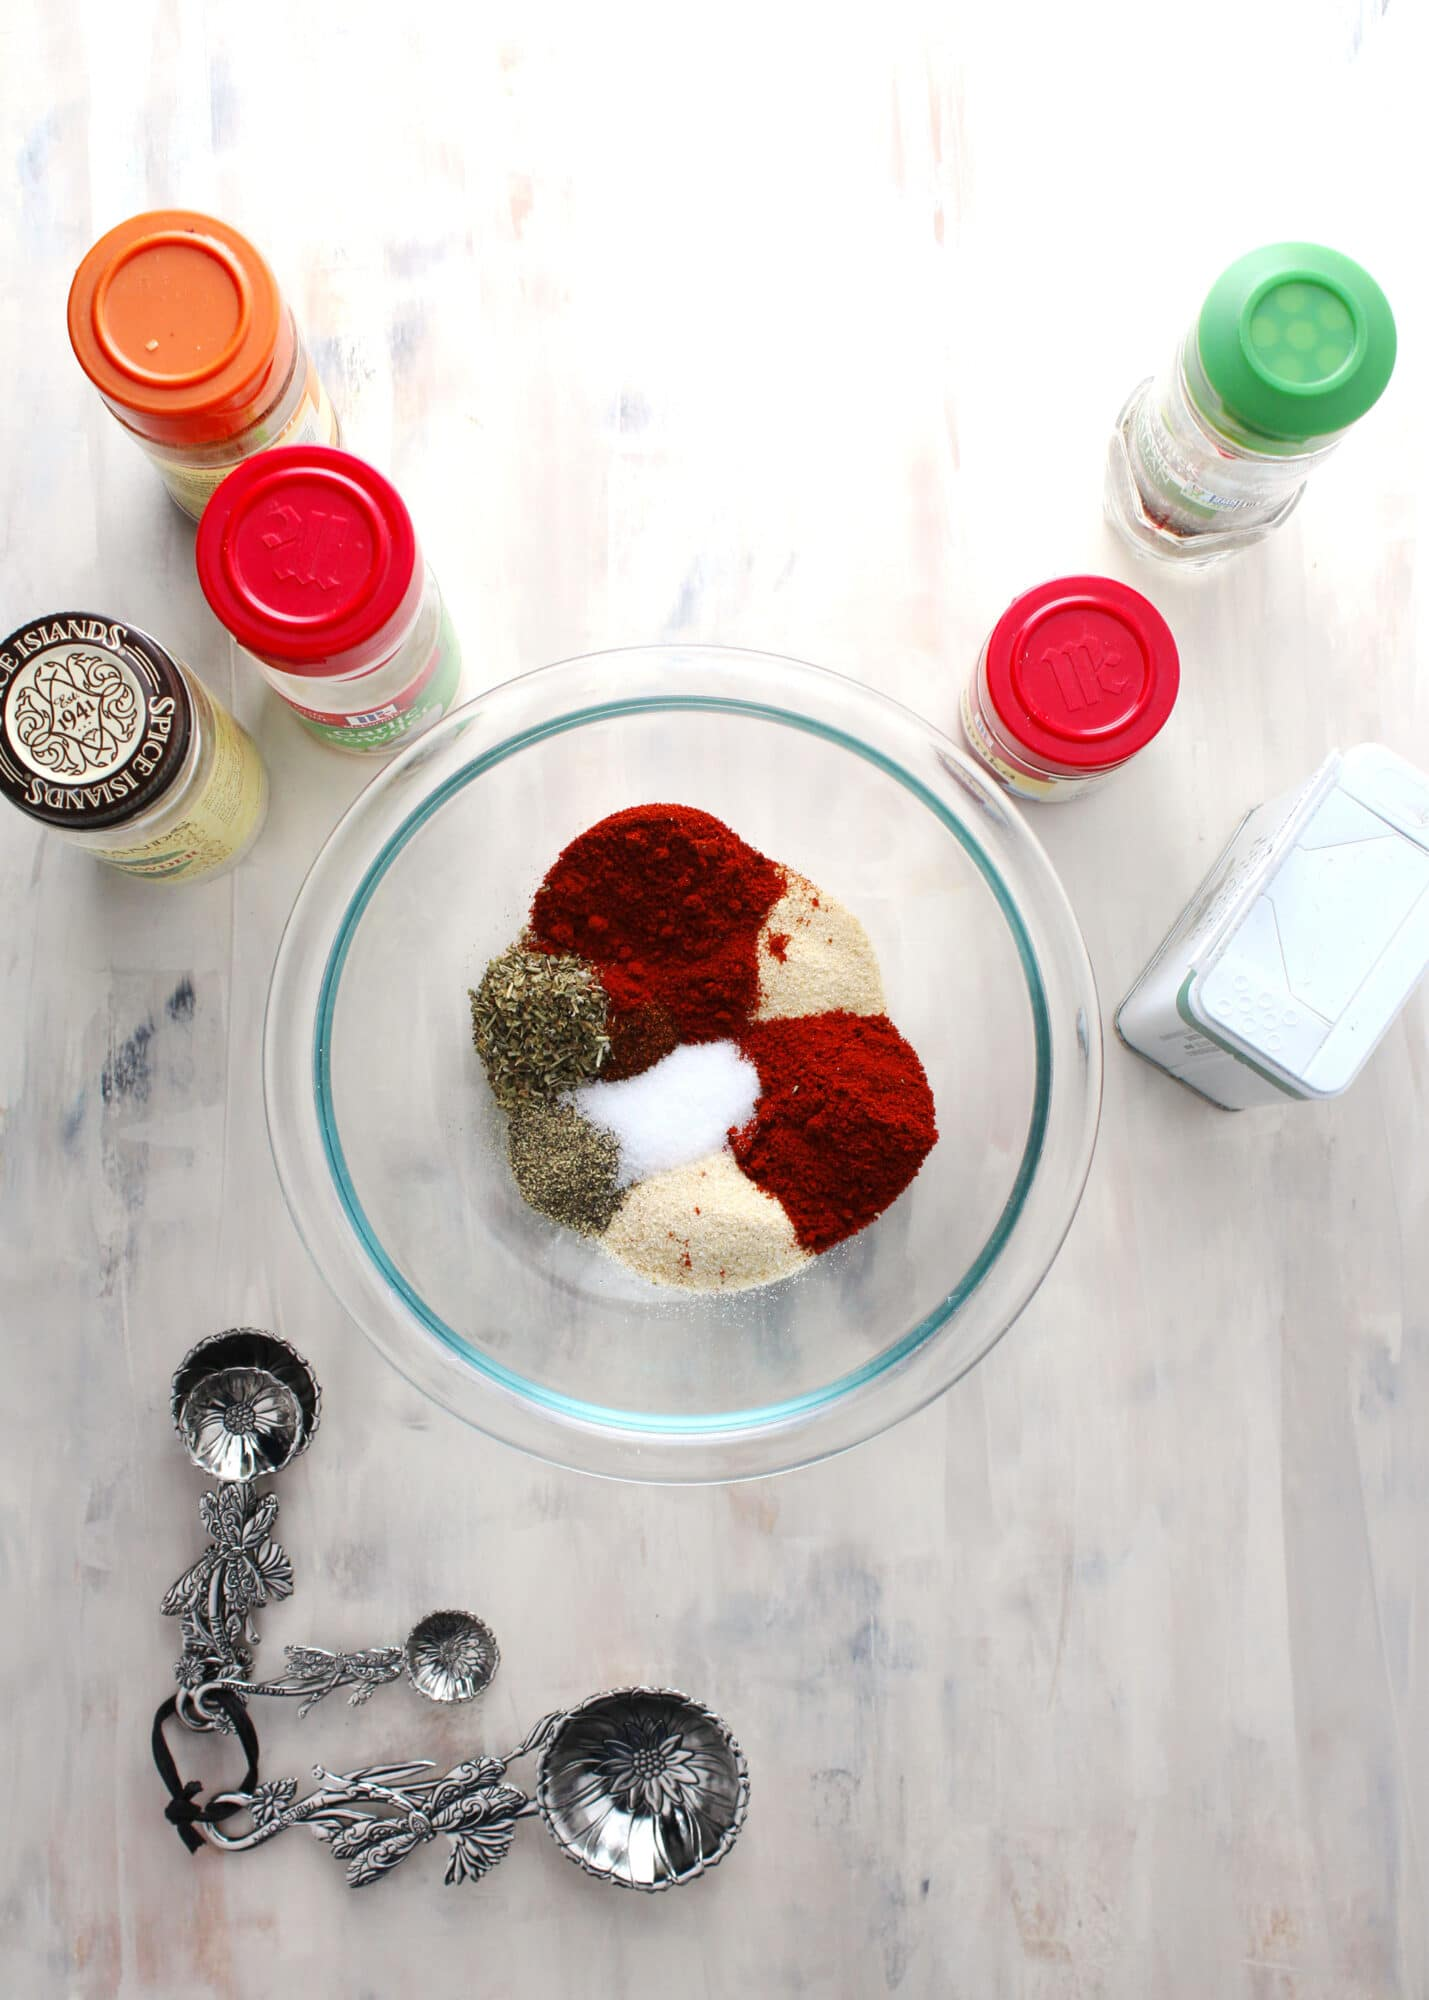 spice ingredients for blackened seasoning in glass bowl